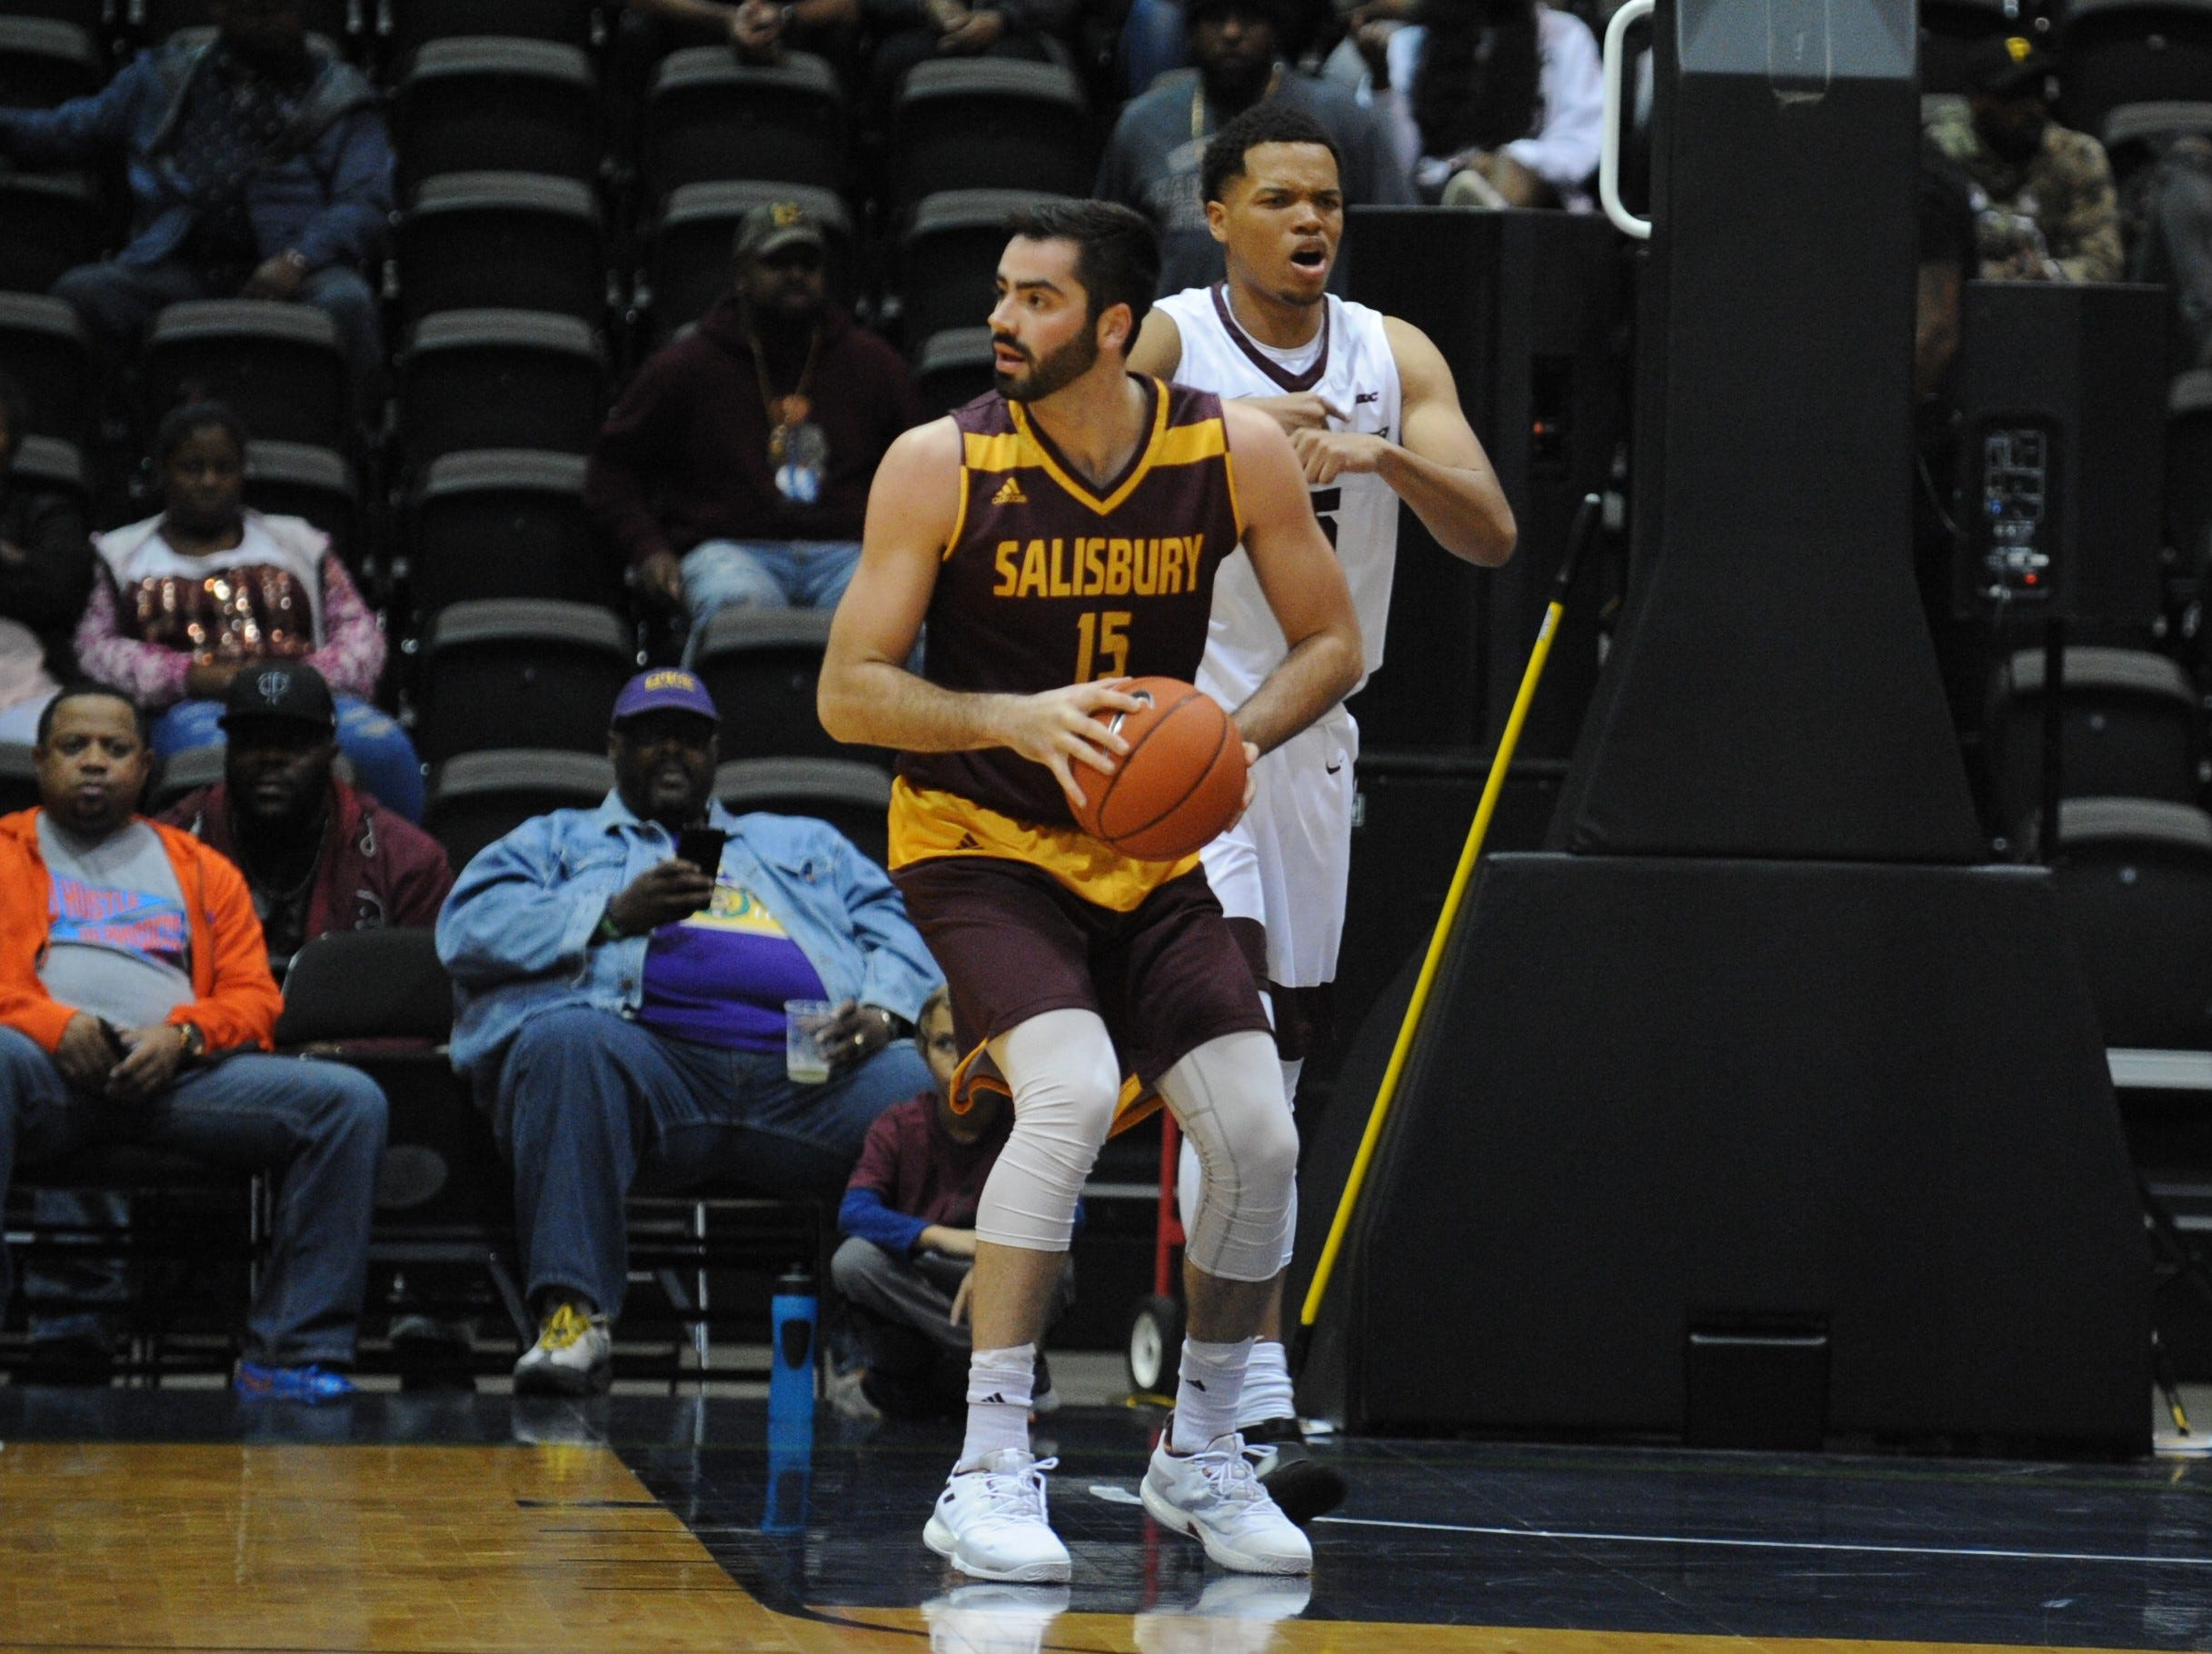 Salisbury University forward James Foley looks to his right against the University of Maryland Eastern Shore during the 10-Mile Tipoff on Thursday, Nov. 1, 2018. The Sea Gulls won, 67-60.